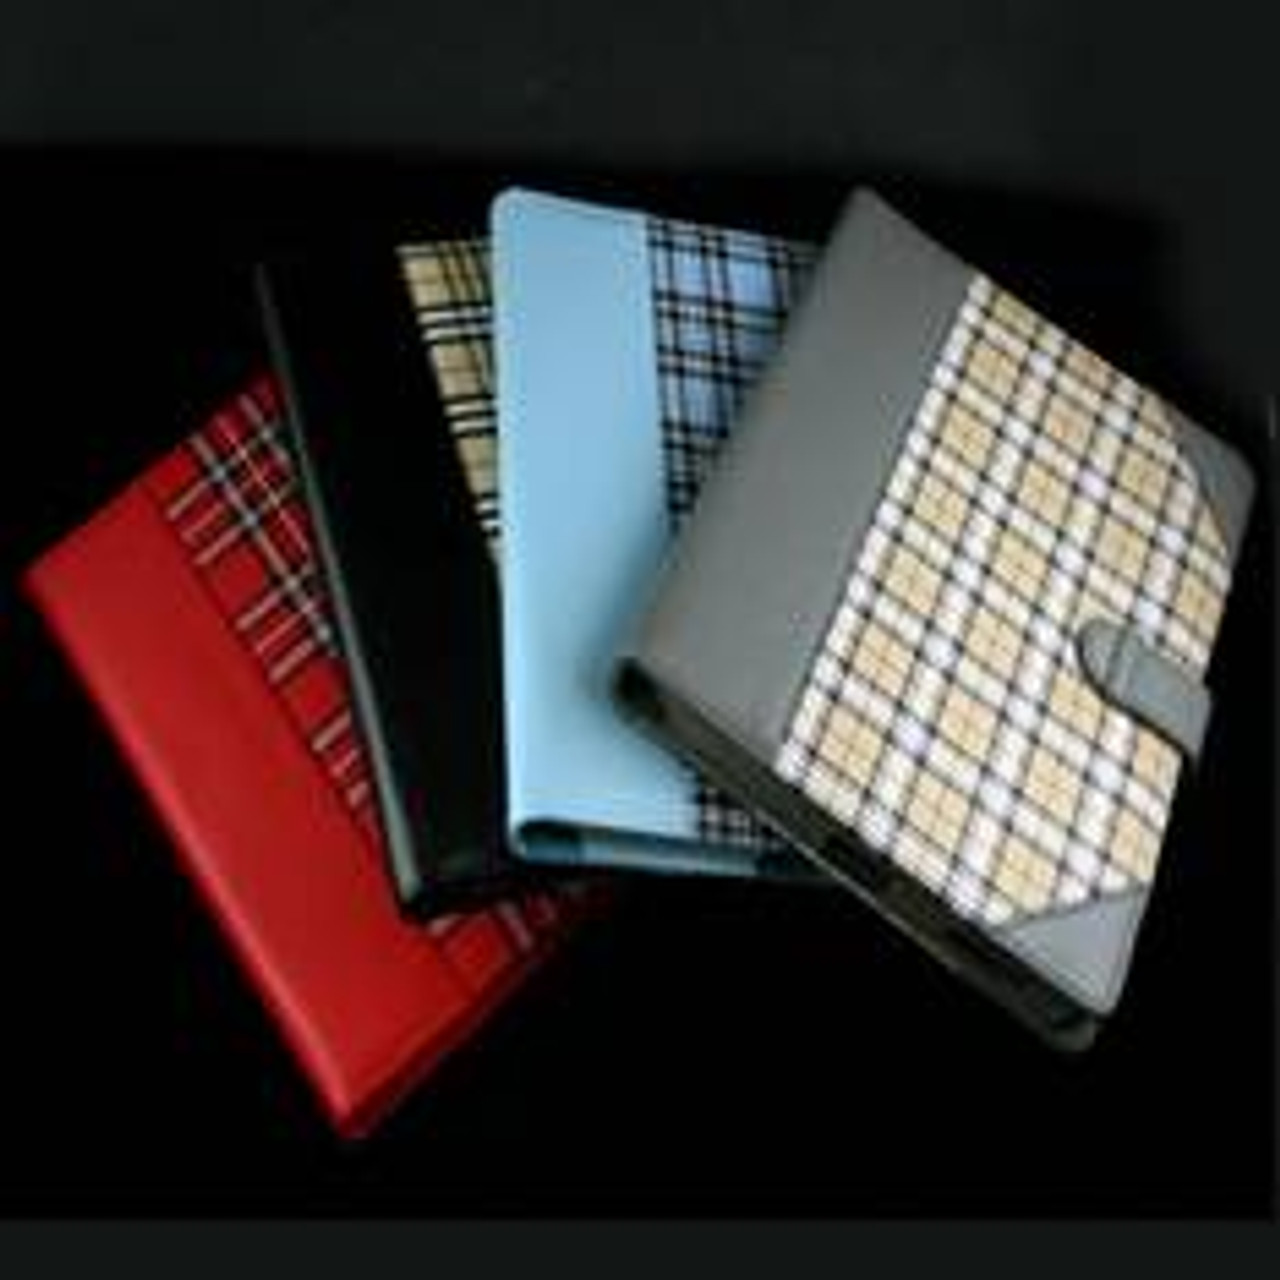 Product image for Leather Carry Chess board Design for iPad | CX Computer Superstore